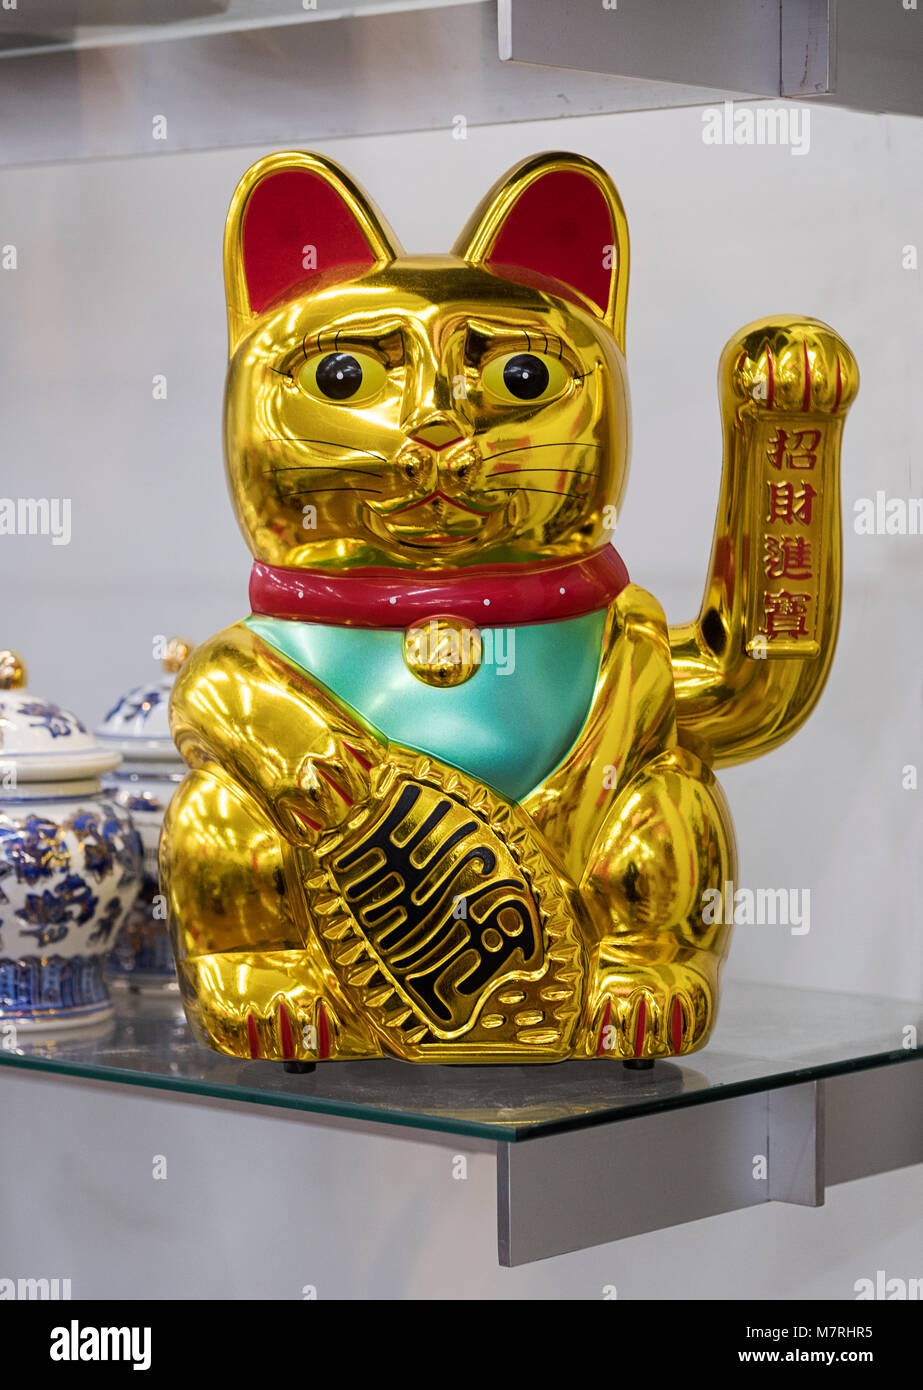 A Chinese Lucky Cat for sale at Pearl River, a Chinese department store on Broadway in lower Manhattan, New York - Stock Image